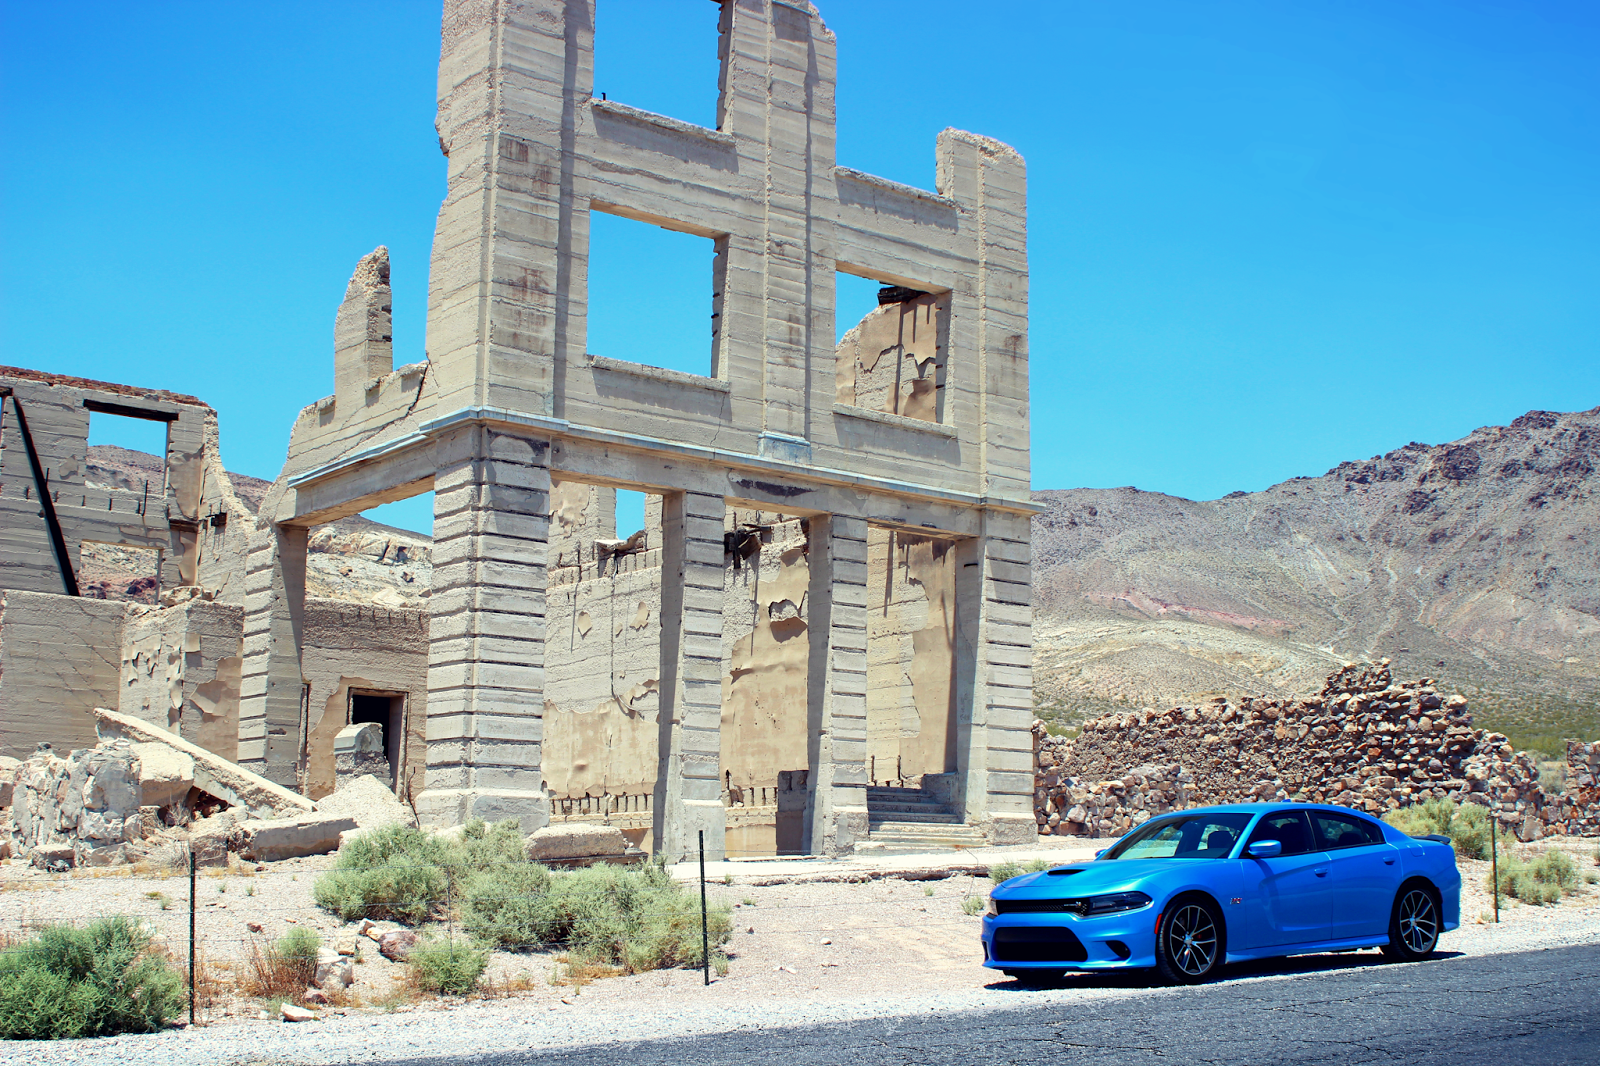 Rhyolite Ghost Town Nevada: What to Know Before You Go |Rhyolite Ghost Town